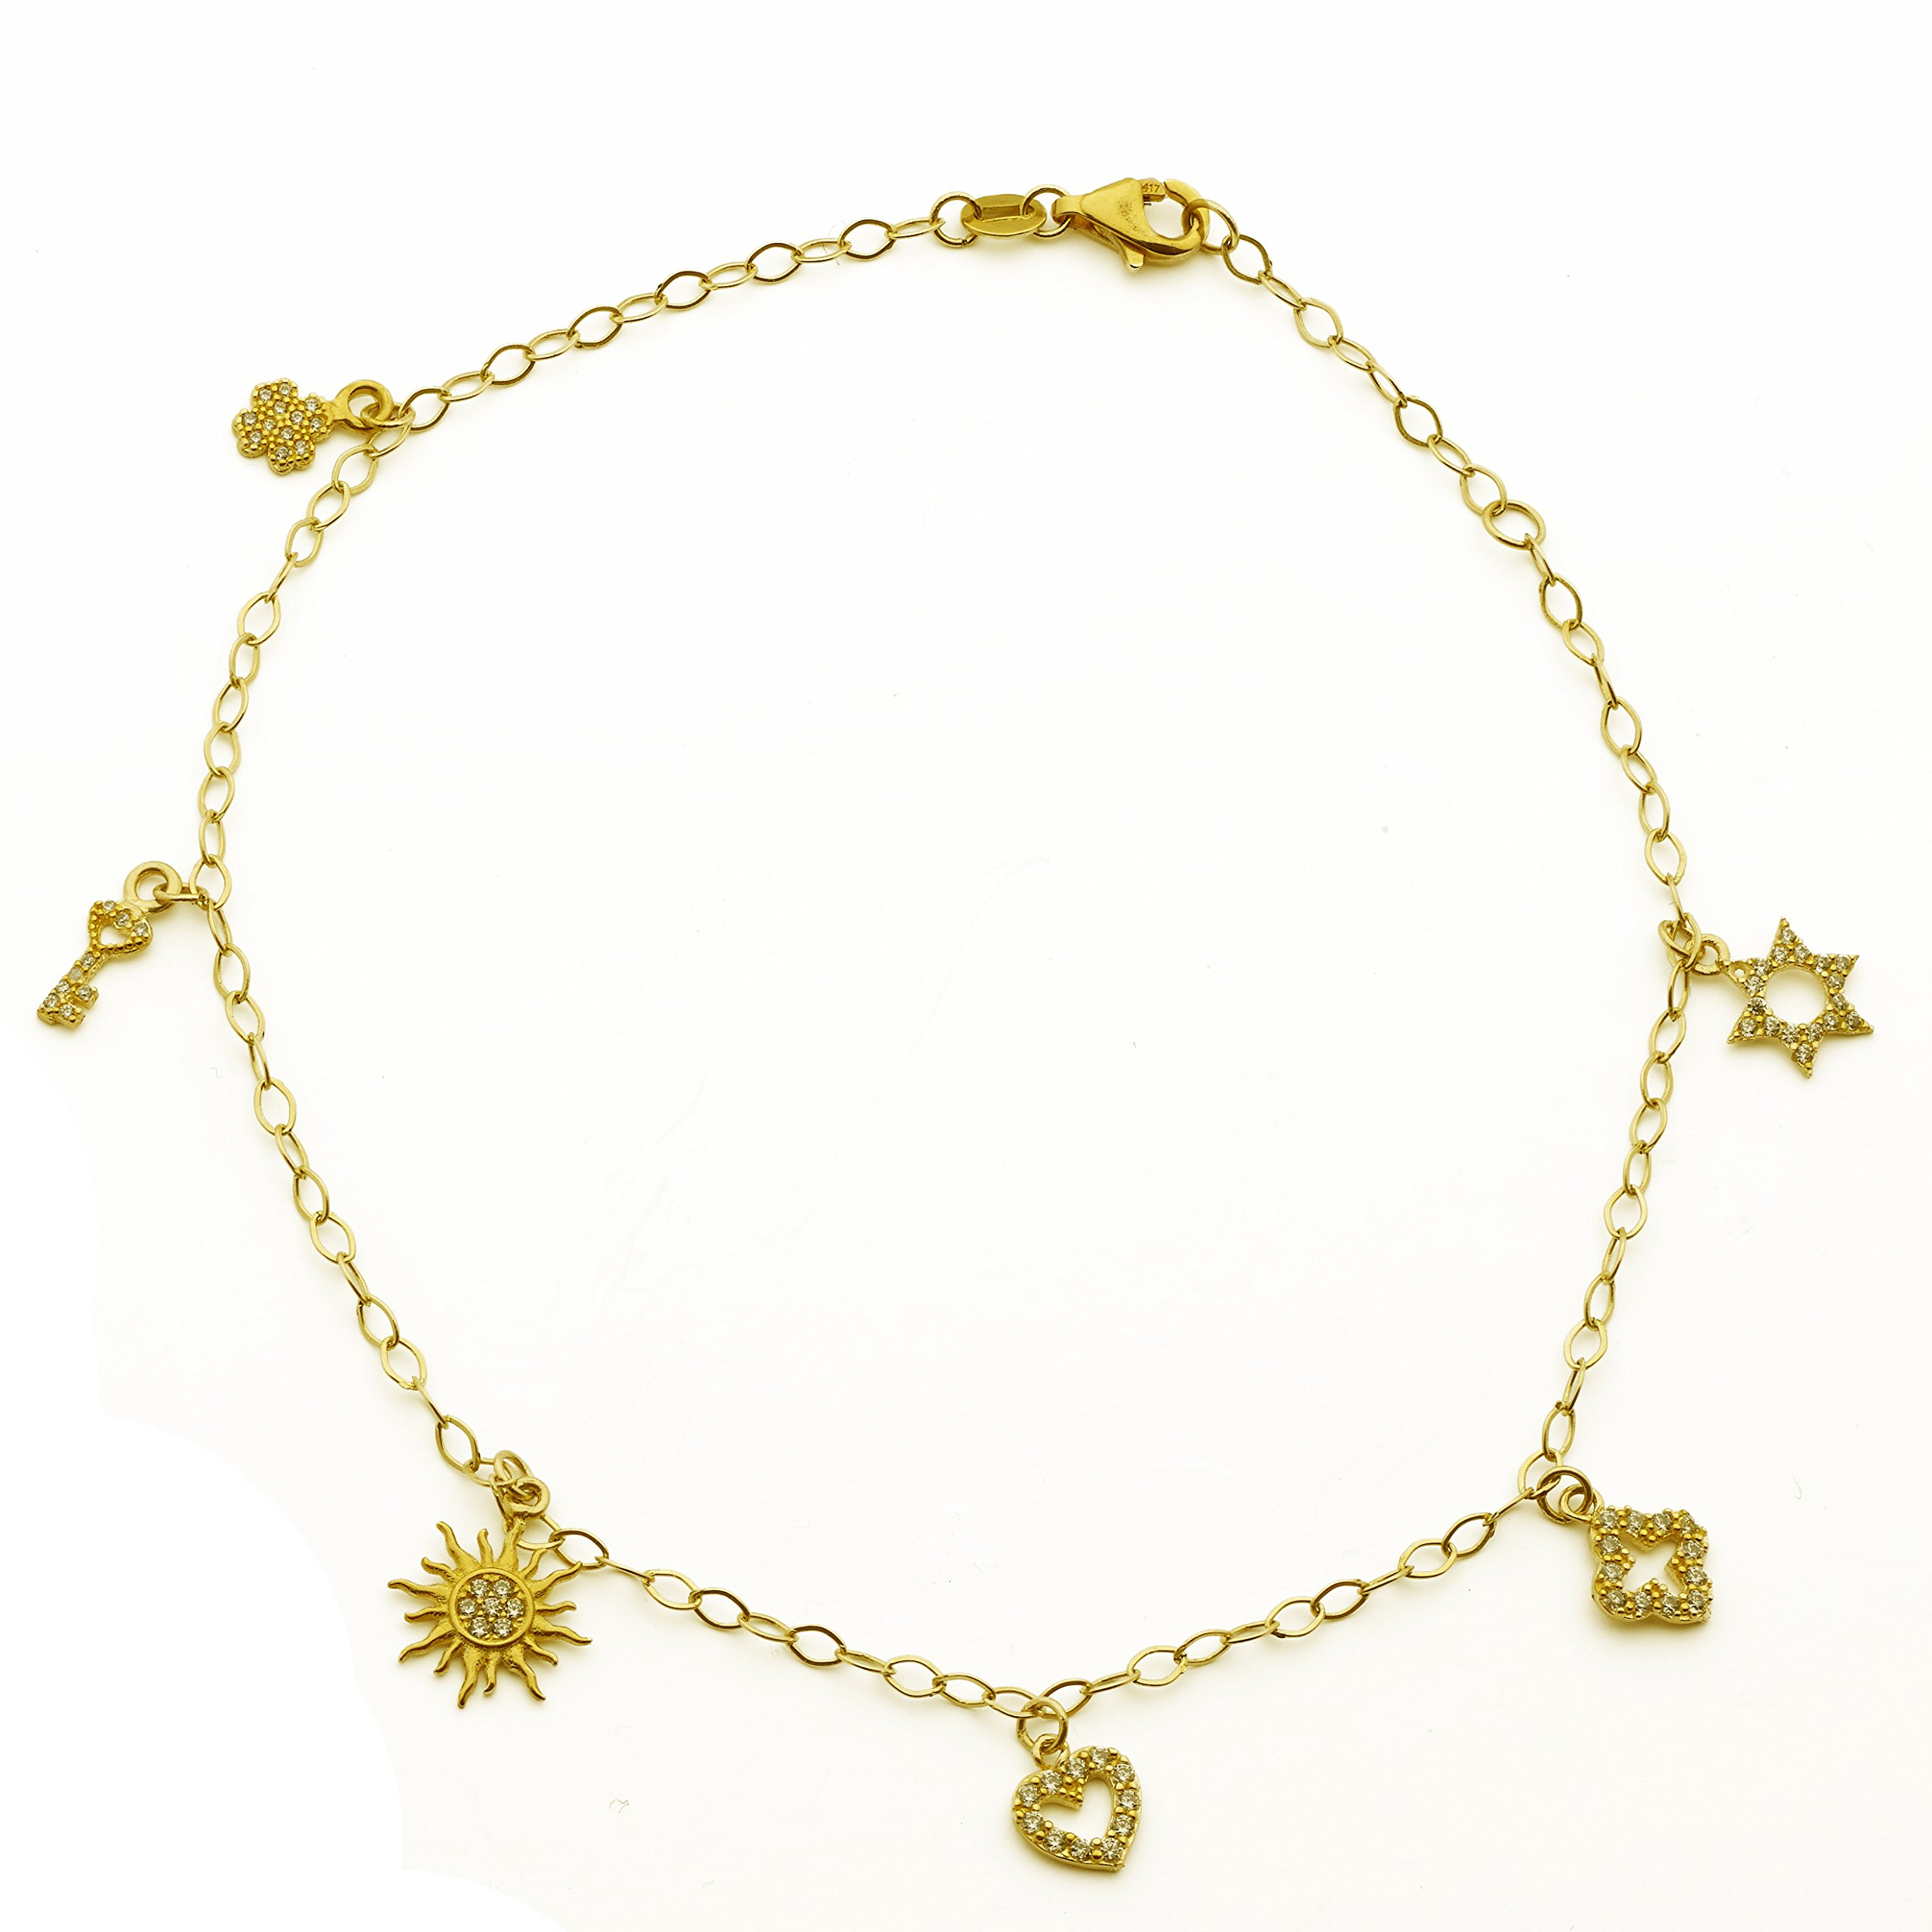 LoveBling 10K Yellow Gold 2mm Diamond Cut Rolo Chain with 6 Charms Anklet Adjustable 9'' to 10 (#36)